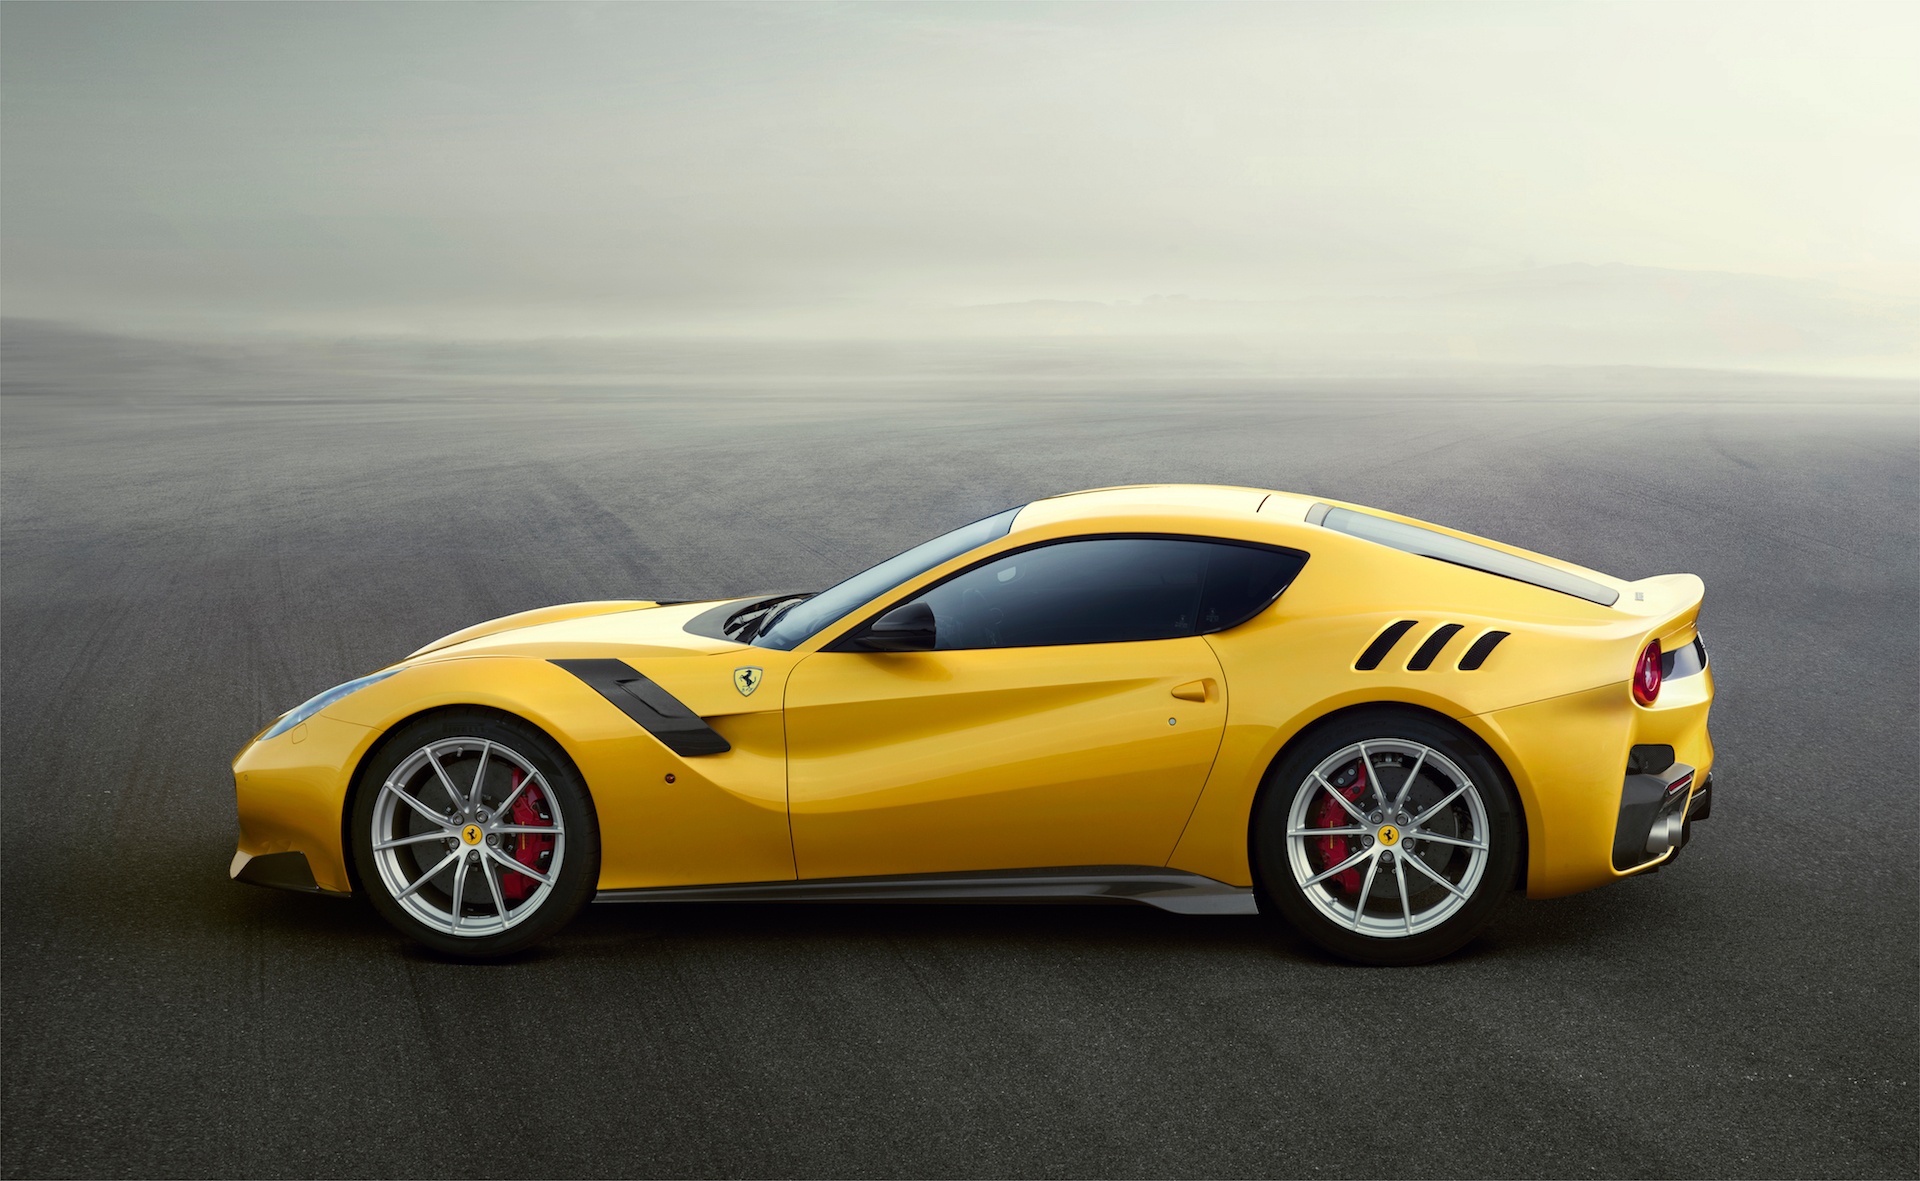 2017 ferrari f12 berlinetta review ratings specs prices and photos. Cars Review. Best American Auto & Cars Review